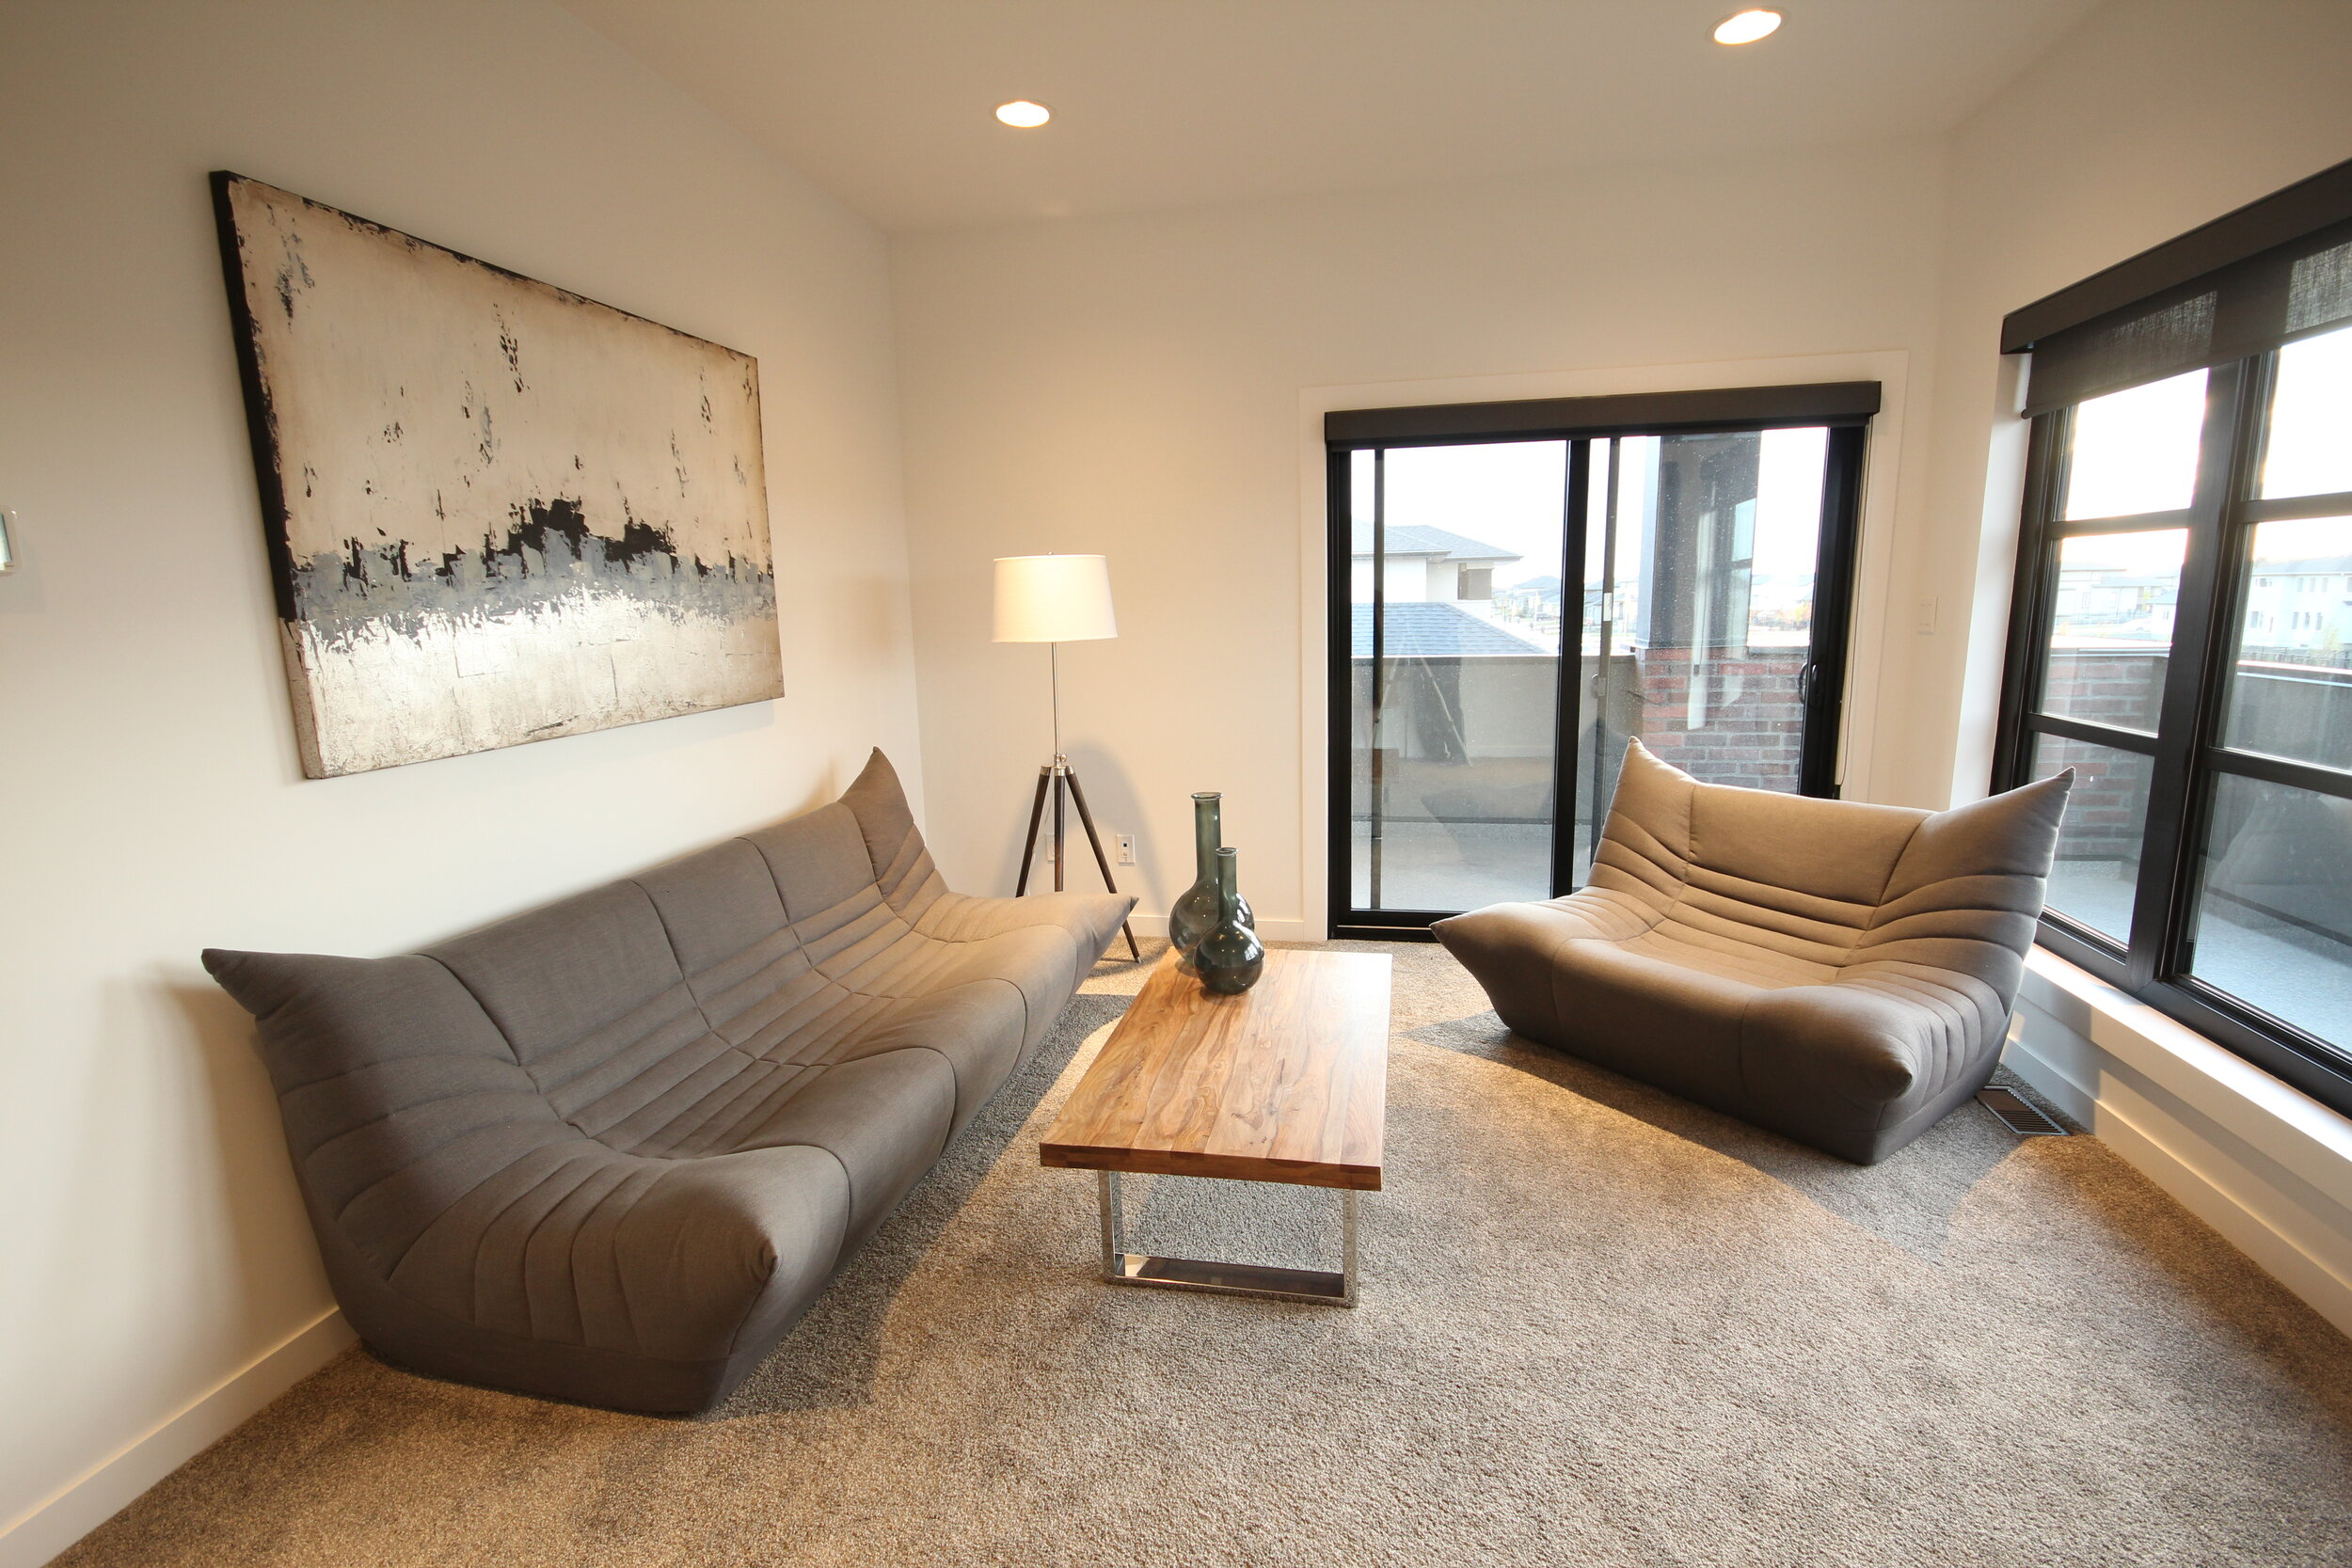 Artista Show Home Furniture. Wolseley Sofa and chair set.